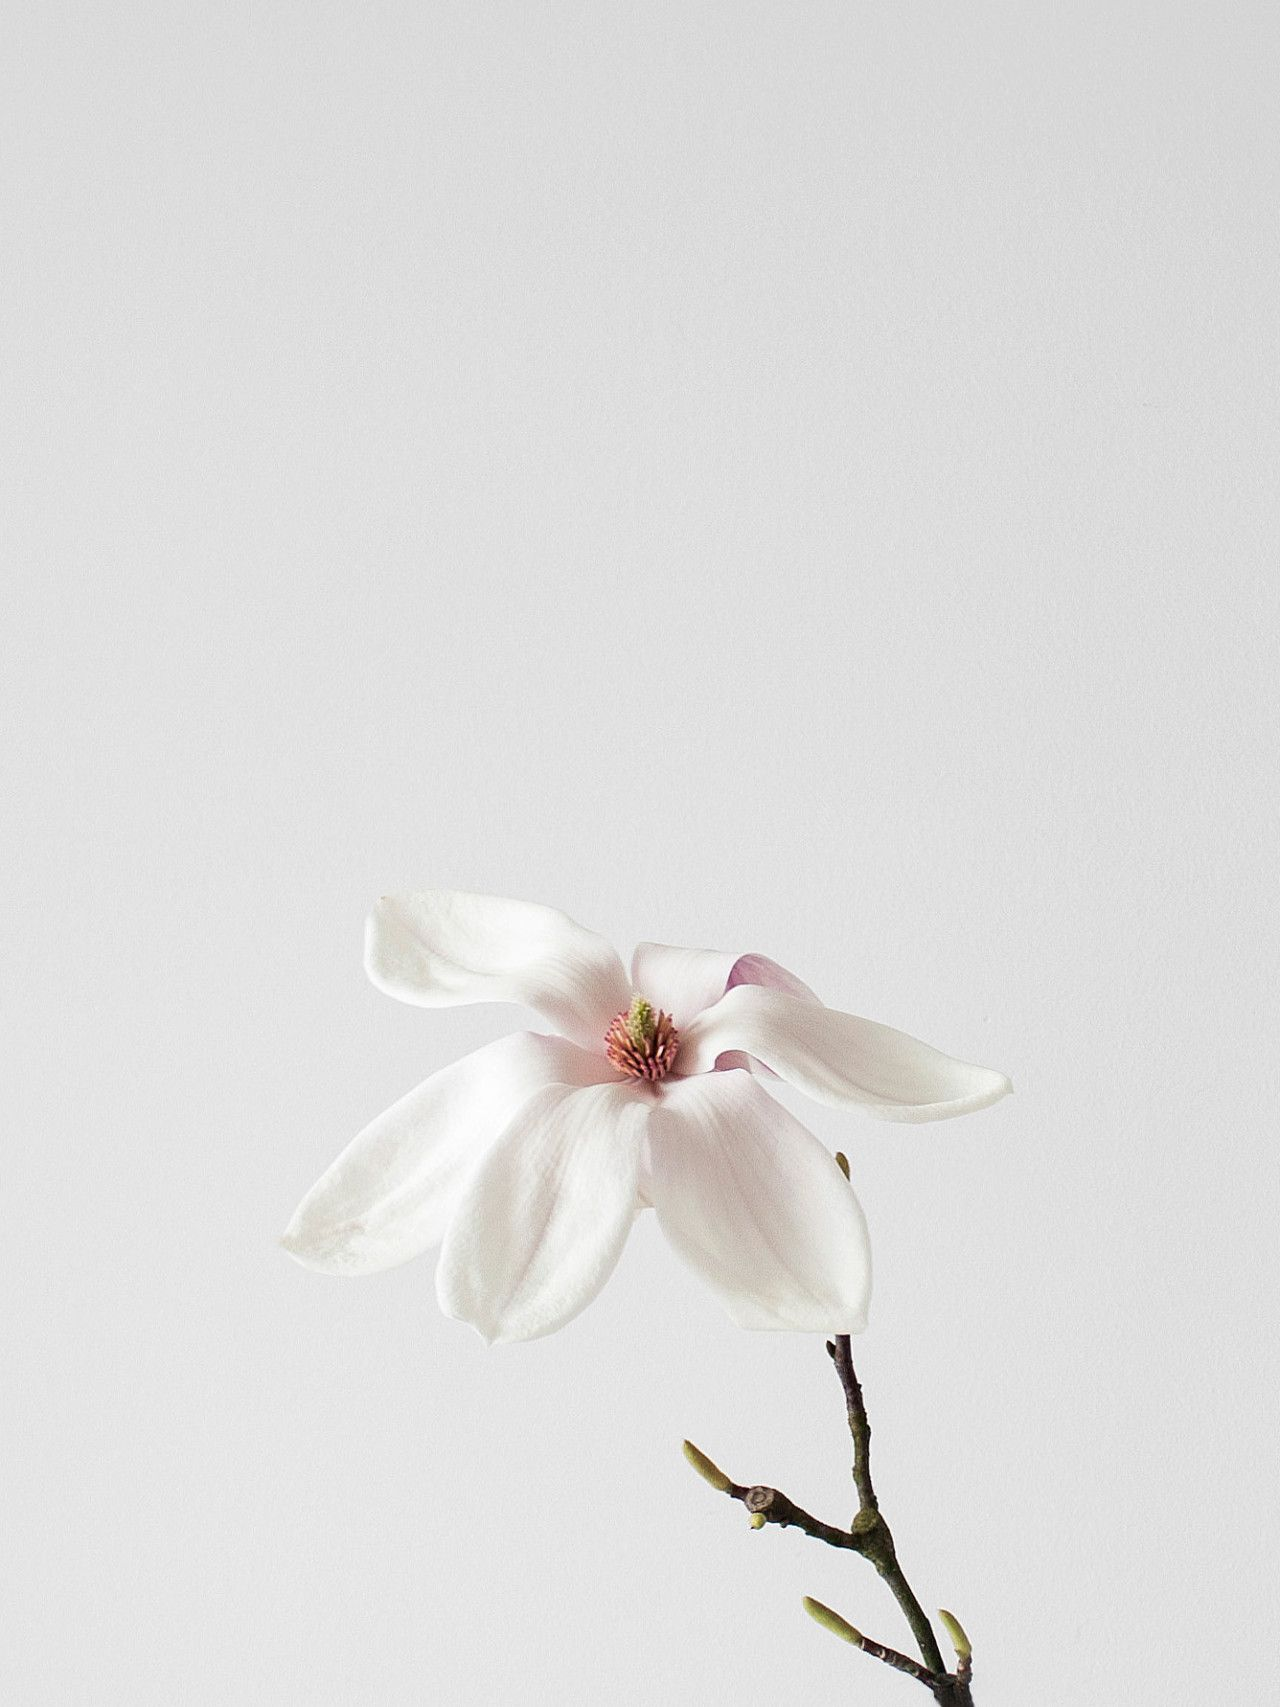 Pin By Elliemai On Plants In 2020 Minimalist Photography